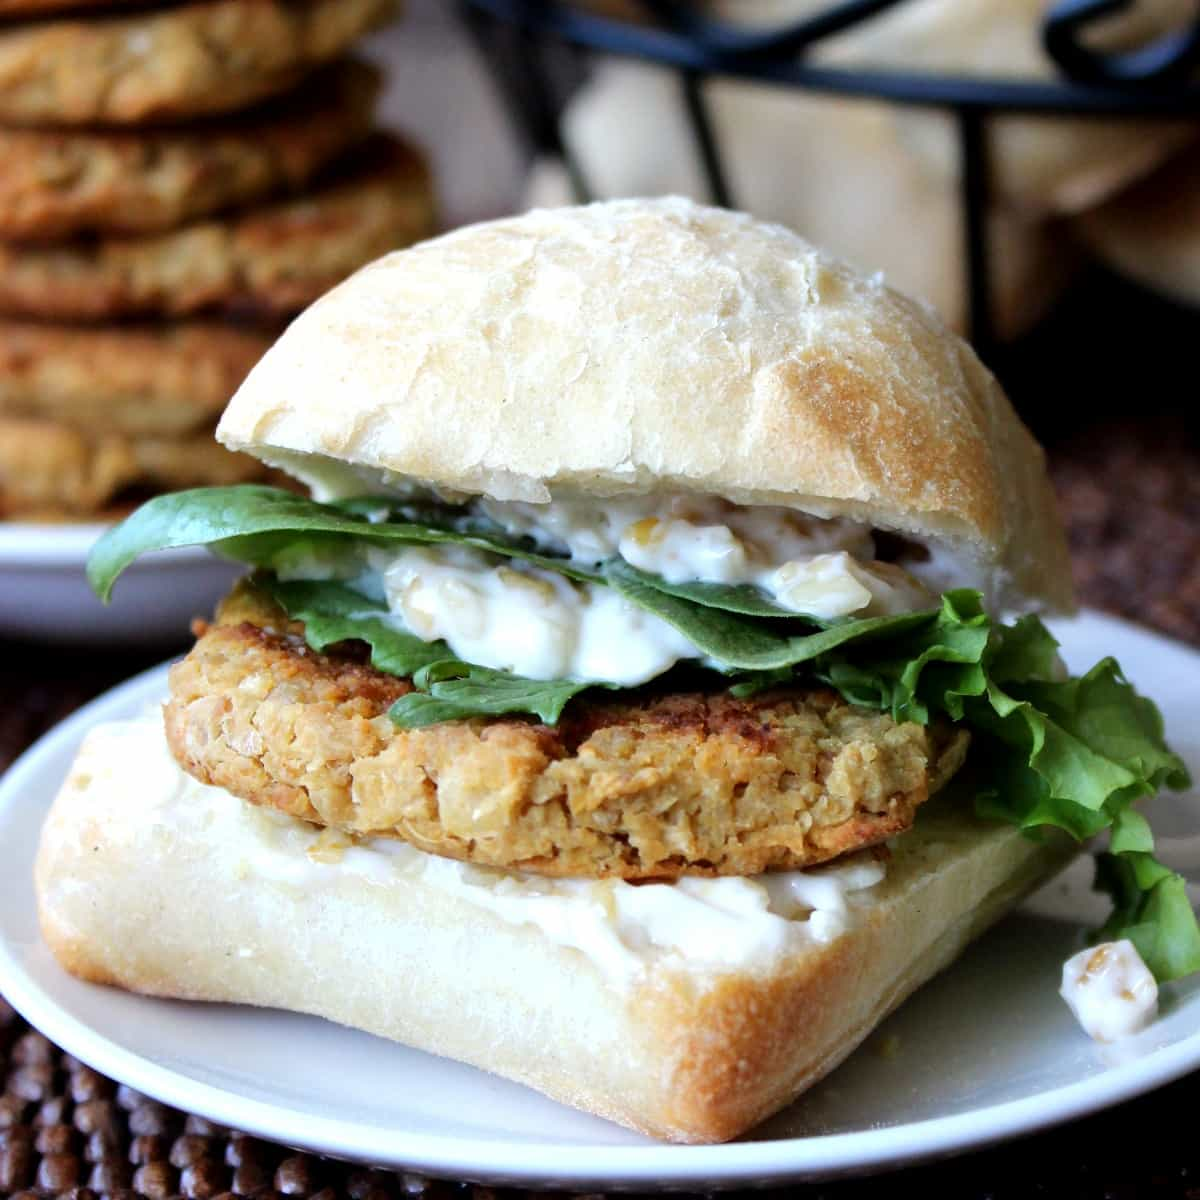 A bun stuffed with baked falafel and homemade sauce.